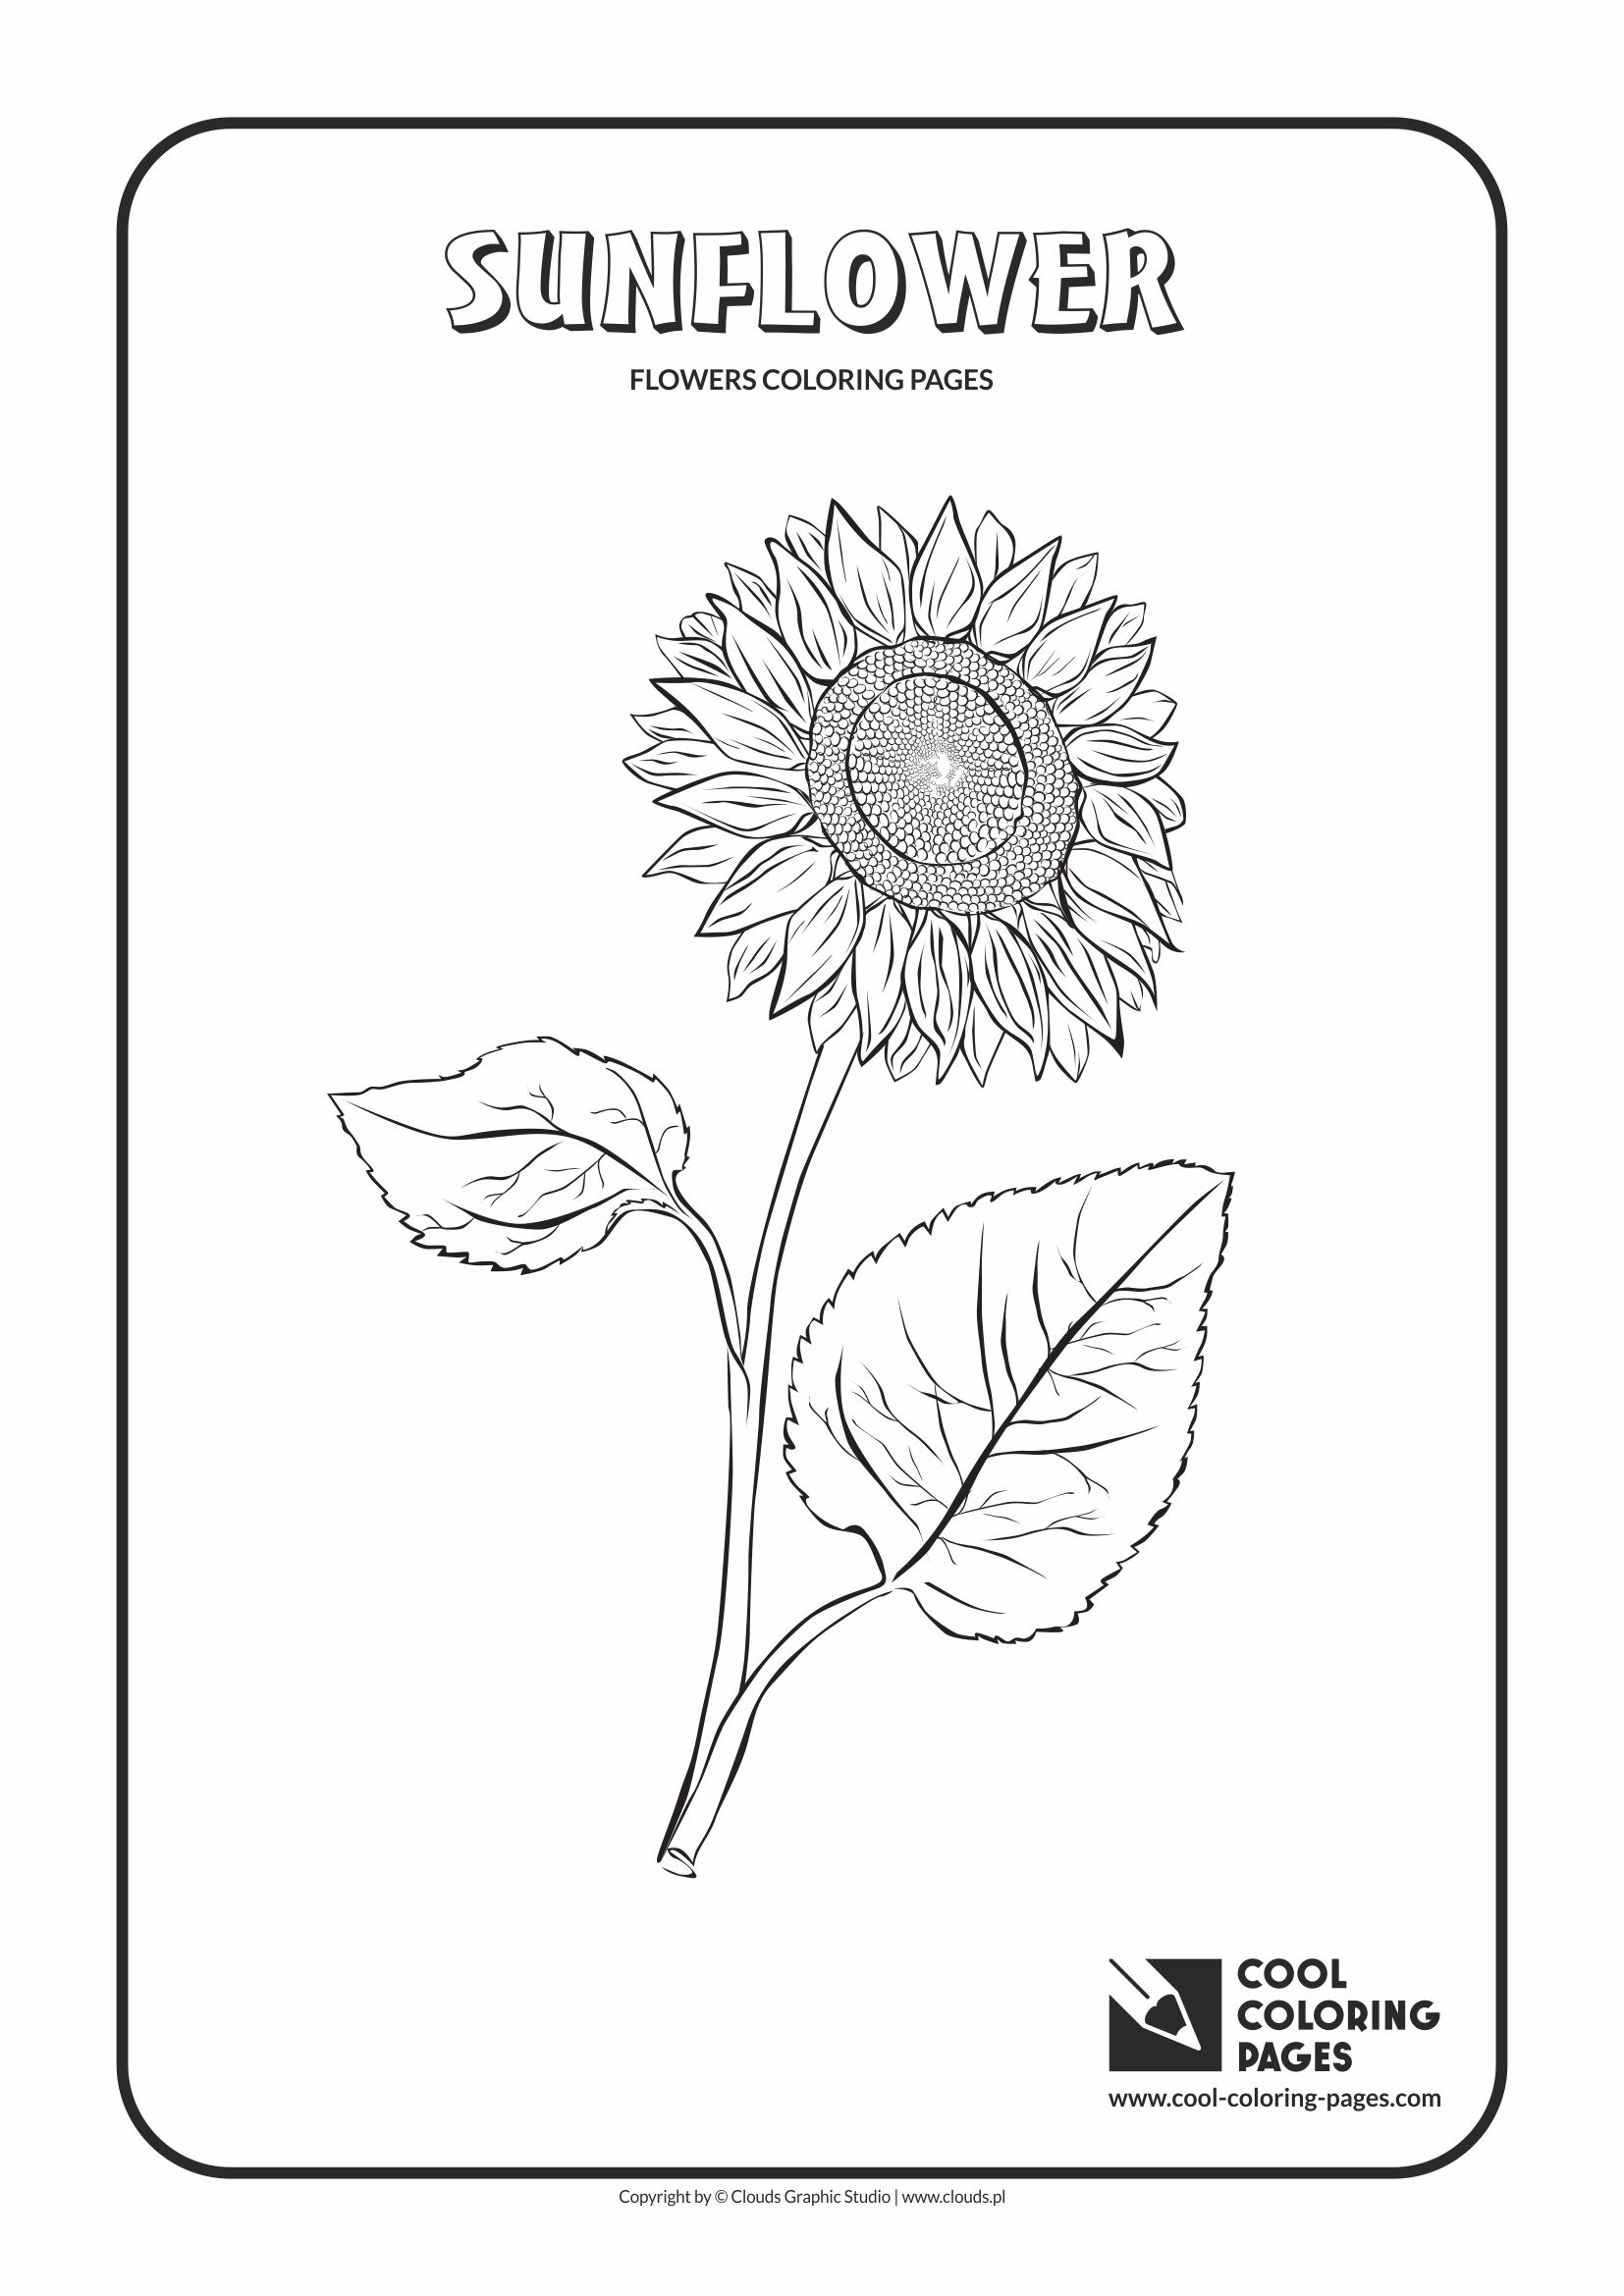 Cool Coloring Pages - Plants / Sunflower / Coloring page with sunflower